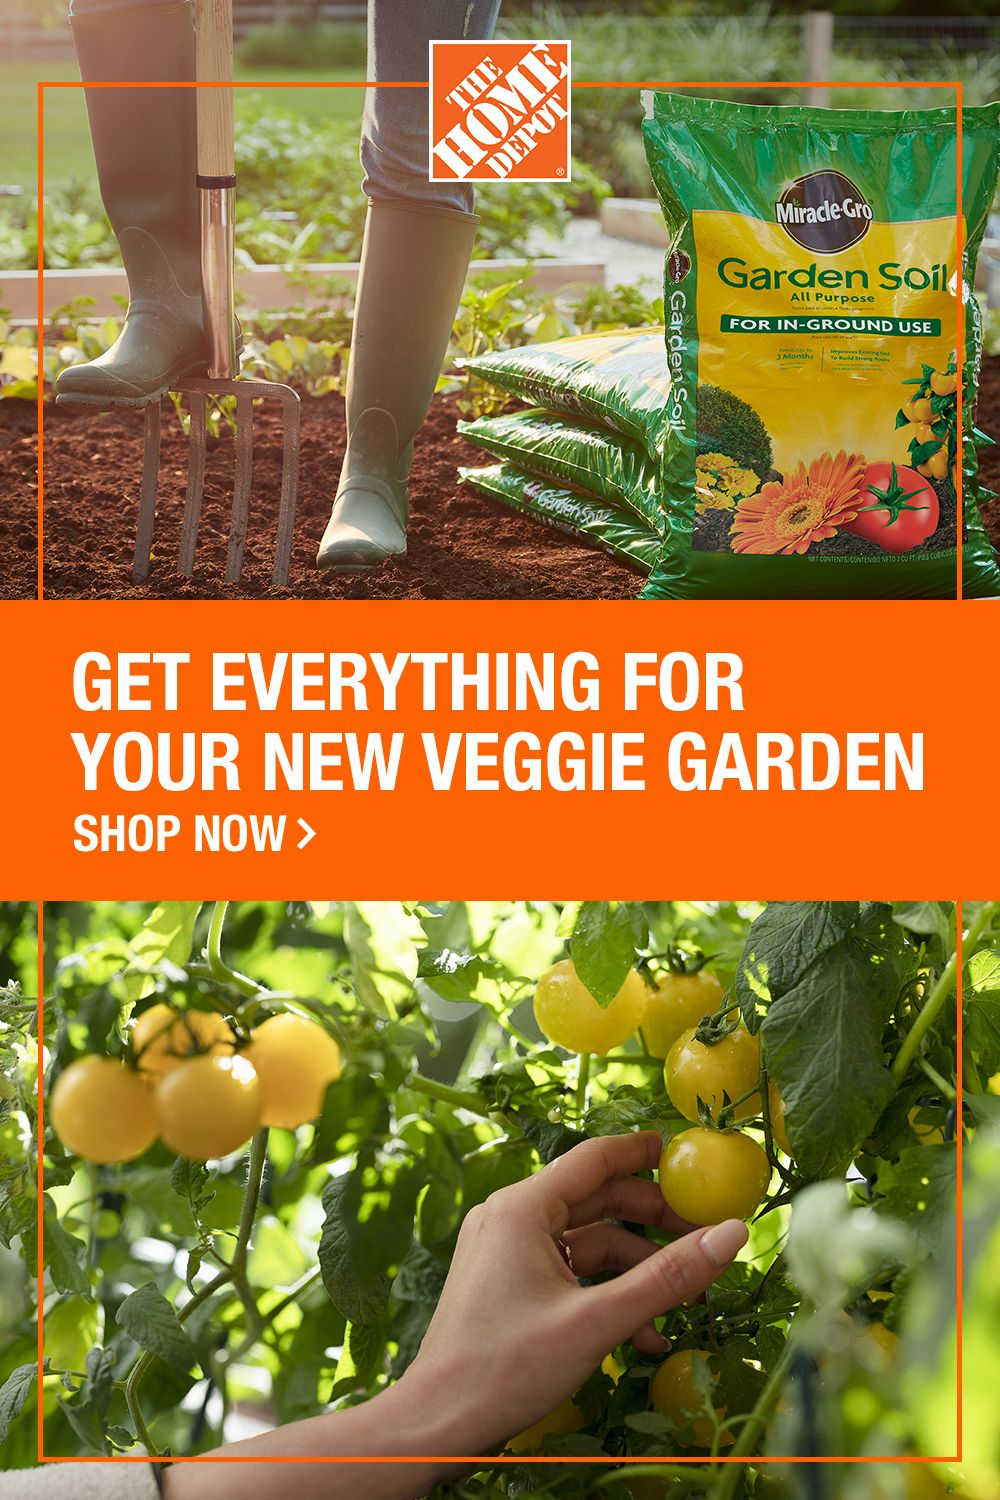 Vegetable gardens need nutrientrich soil and food. That's